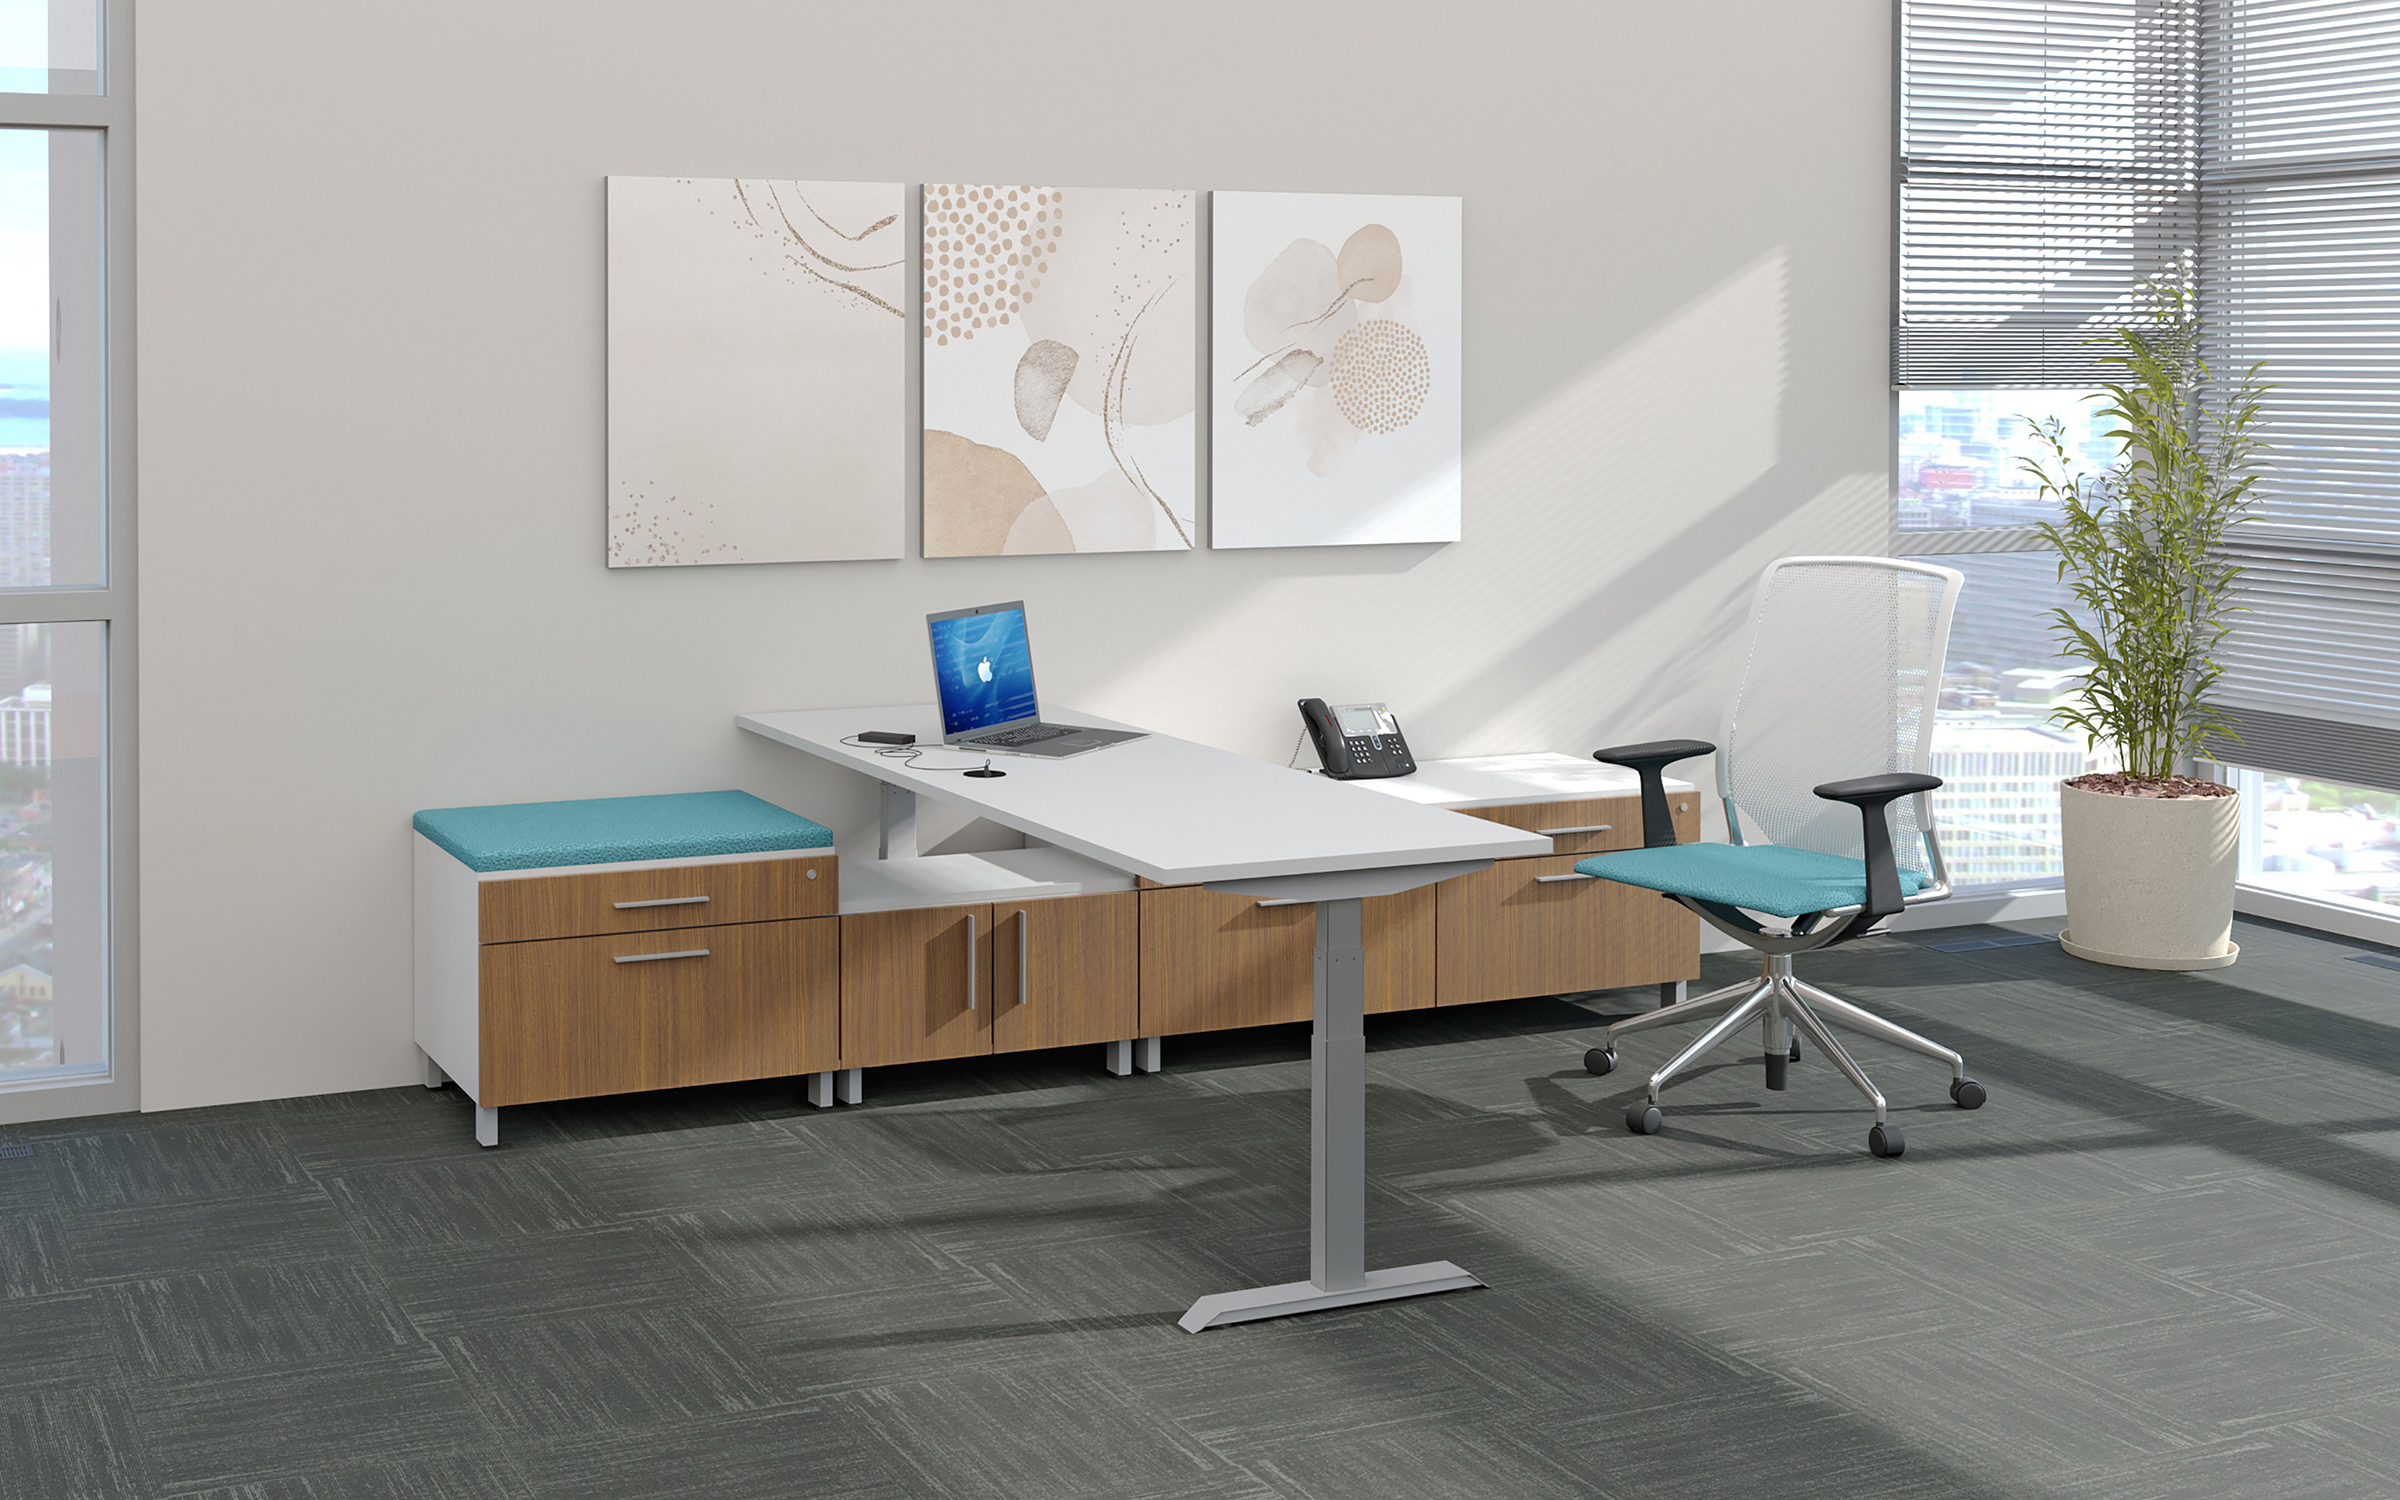 Exec. office with hight adjustable desk